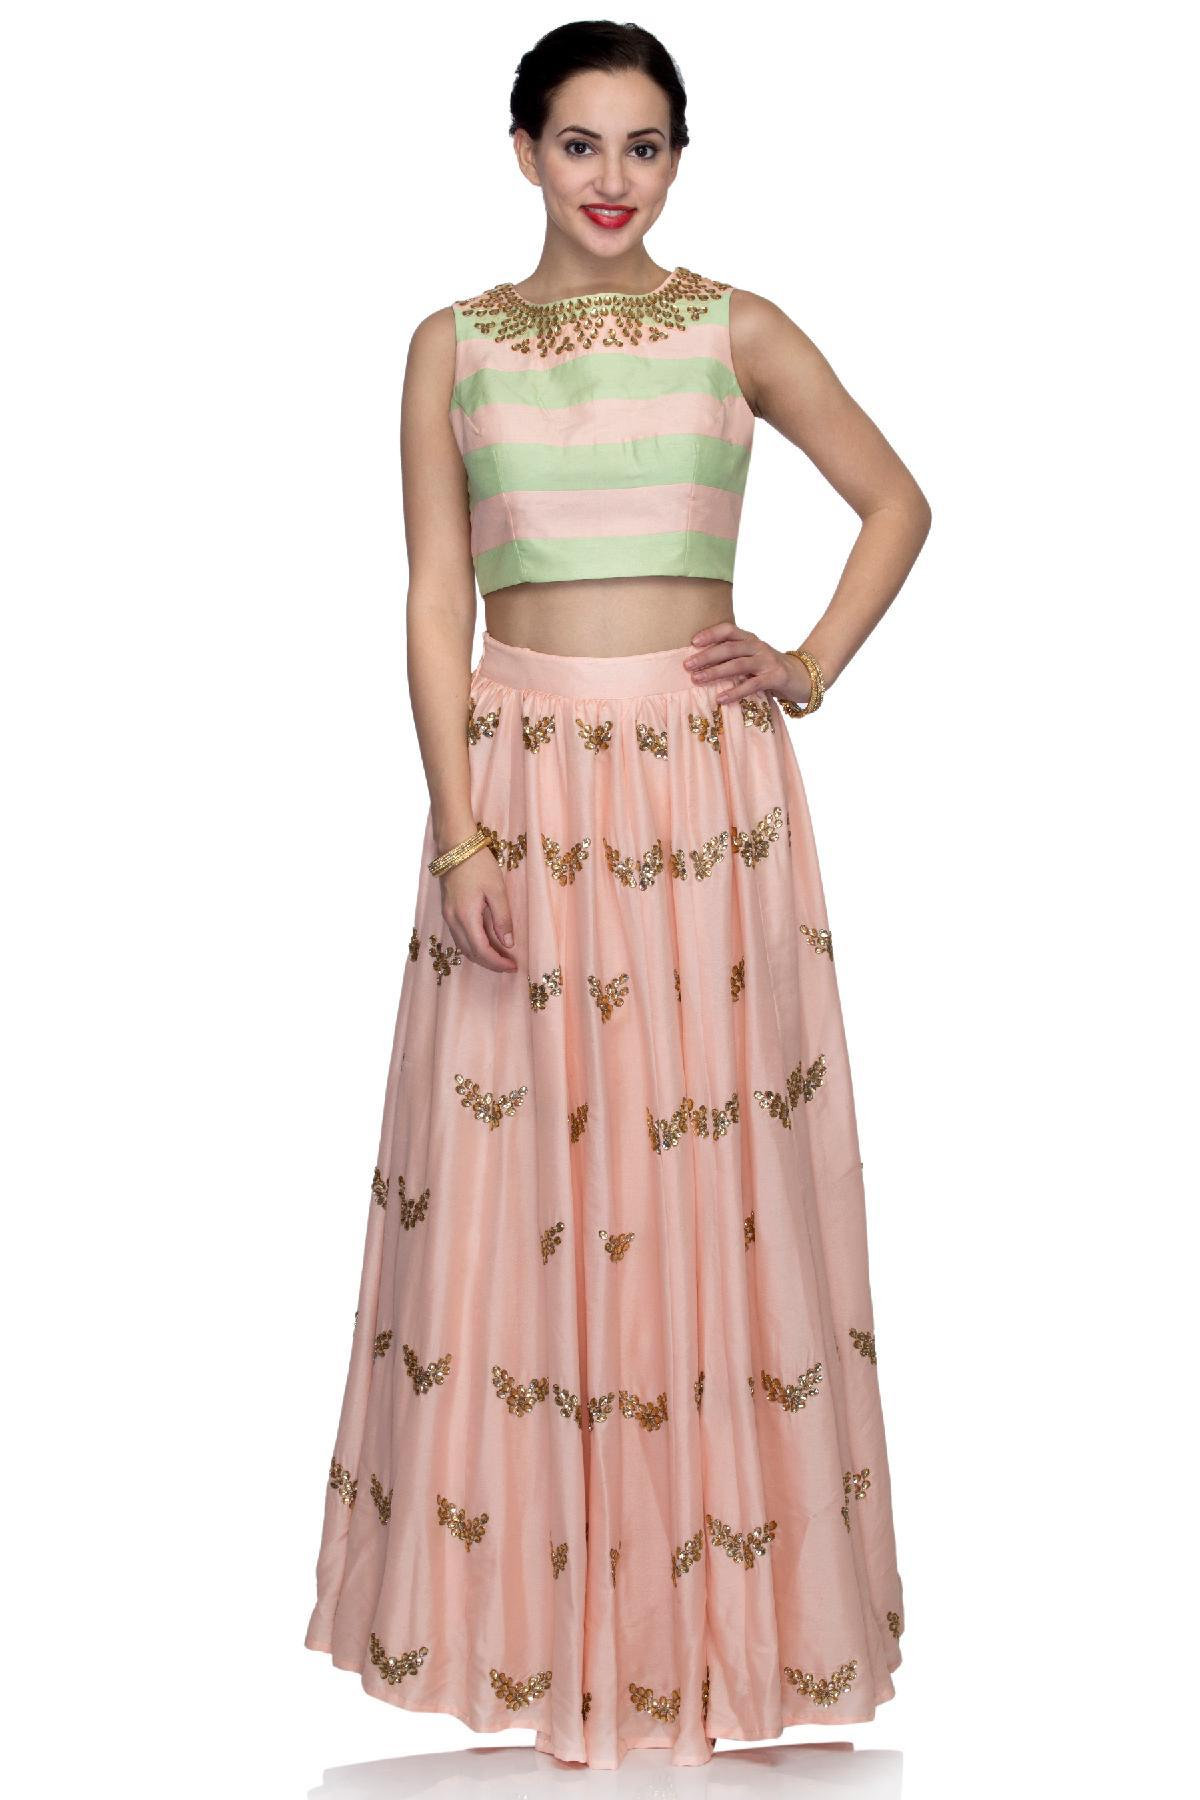 28ccfadee39a ... Trinesha's Closet ethnic Stone Work Crop Top and Skirt Mint Green and  Peach ethnic-crop ...